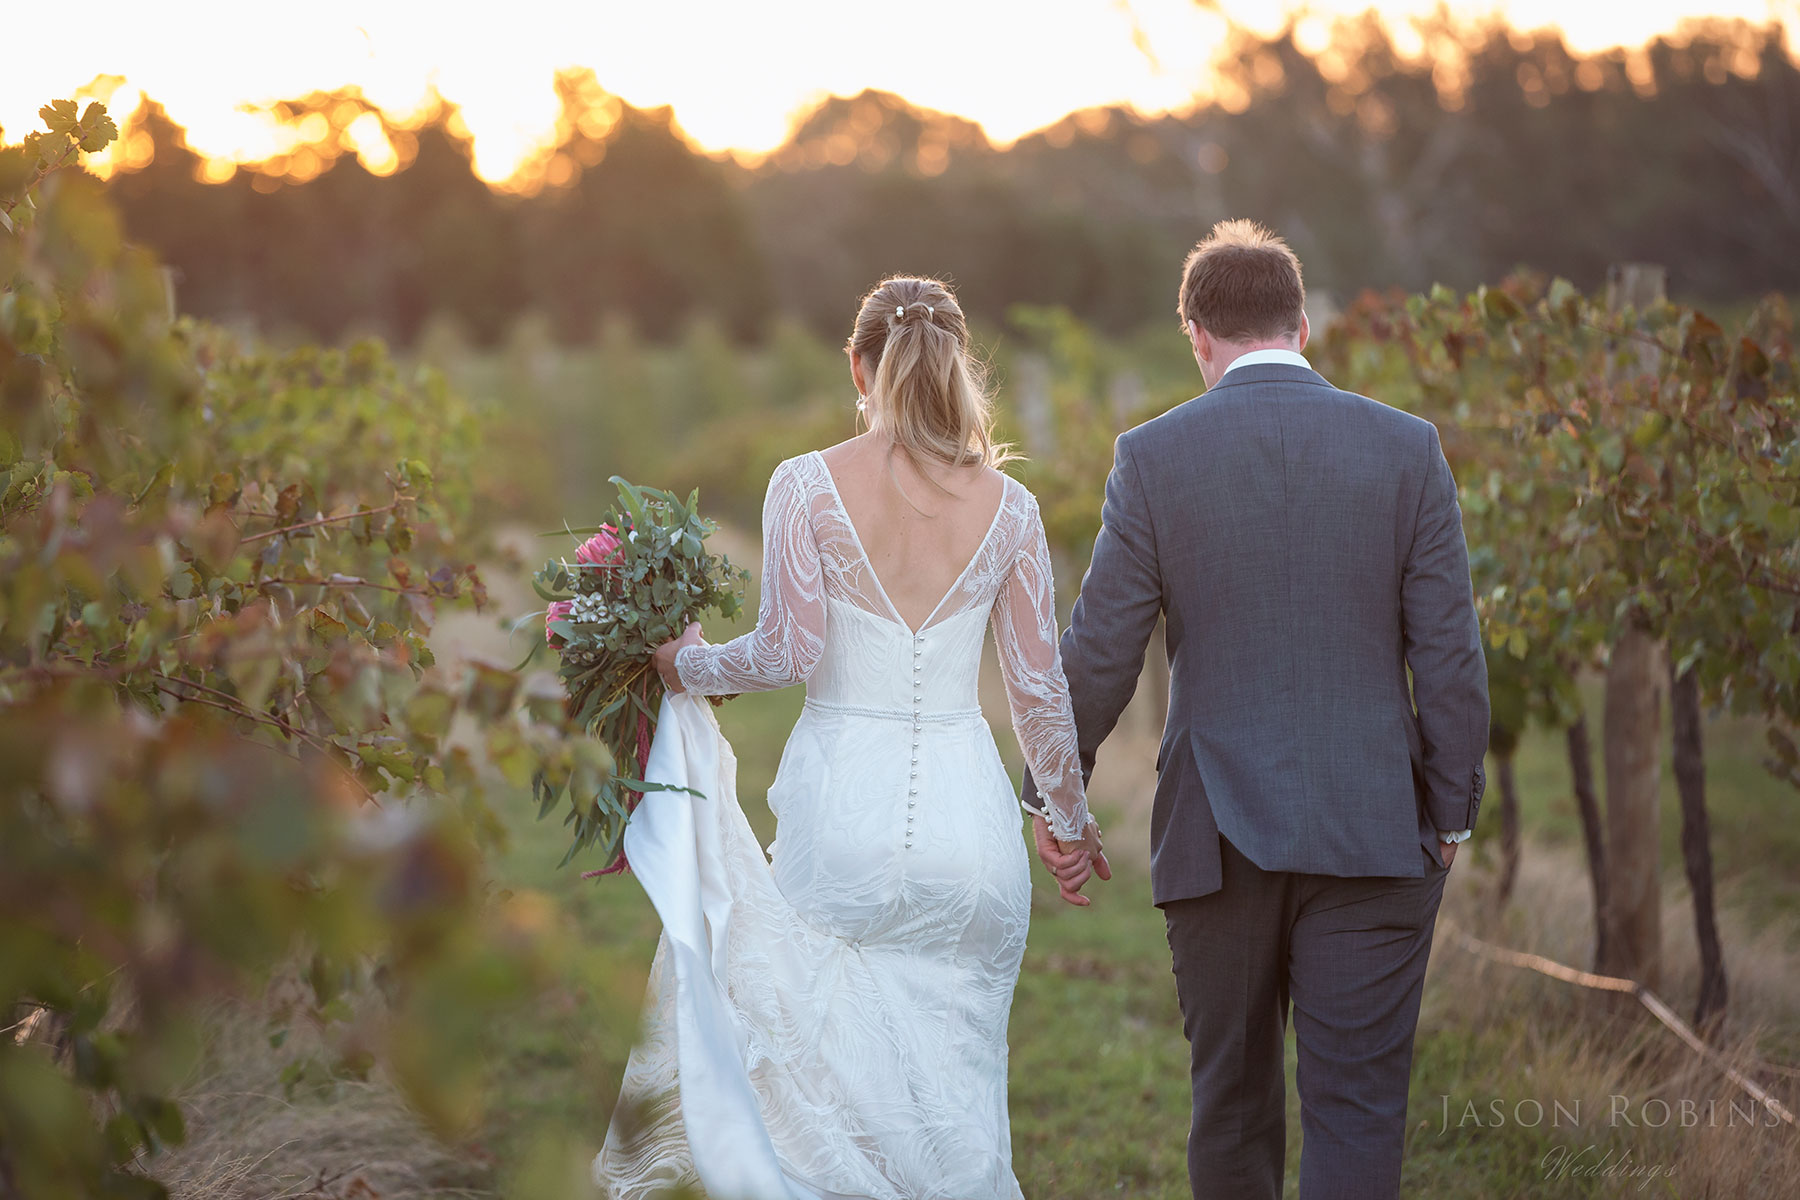 @jasonrobinsphotographyau's cover photo for 'St Leonards Vineyard Wedding - Claire & Grant's Wedding Sneak Peek'